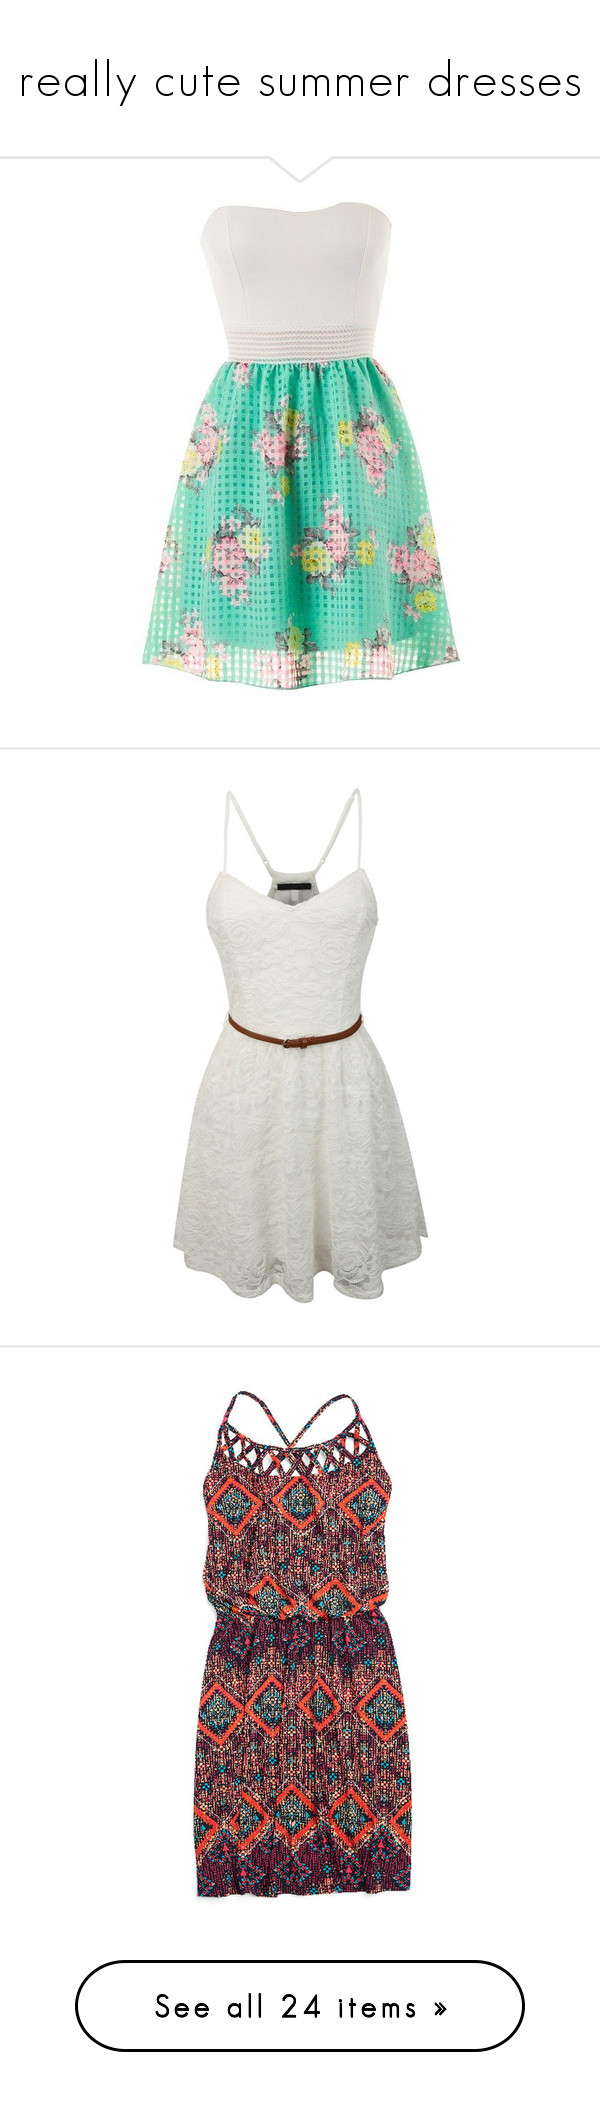 really cute summer dresses